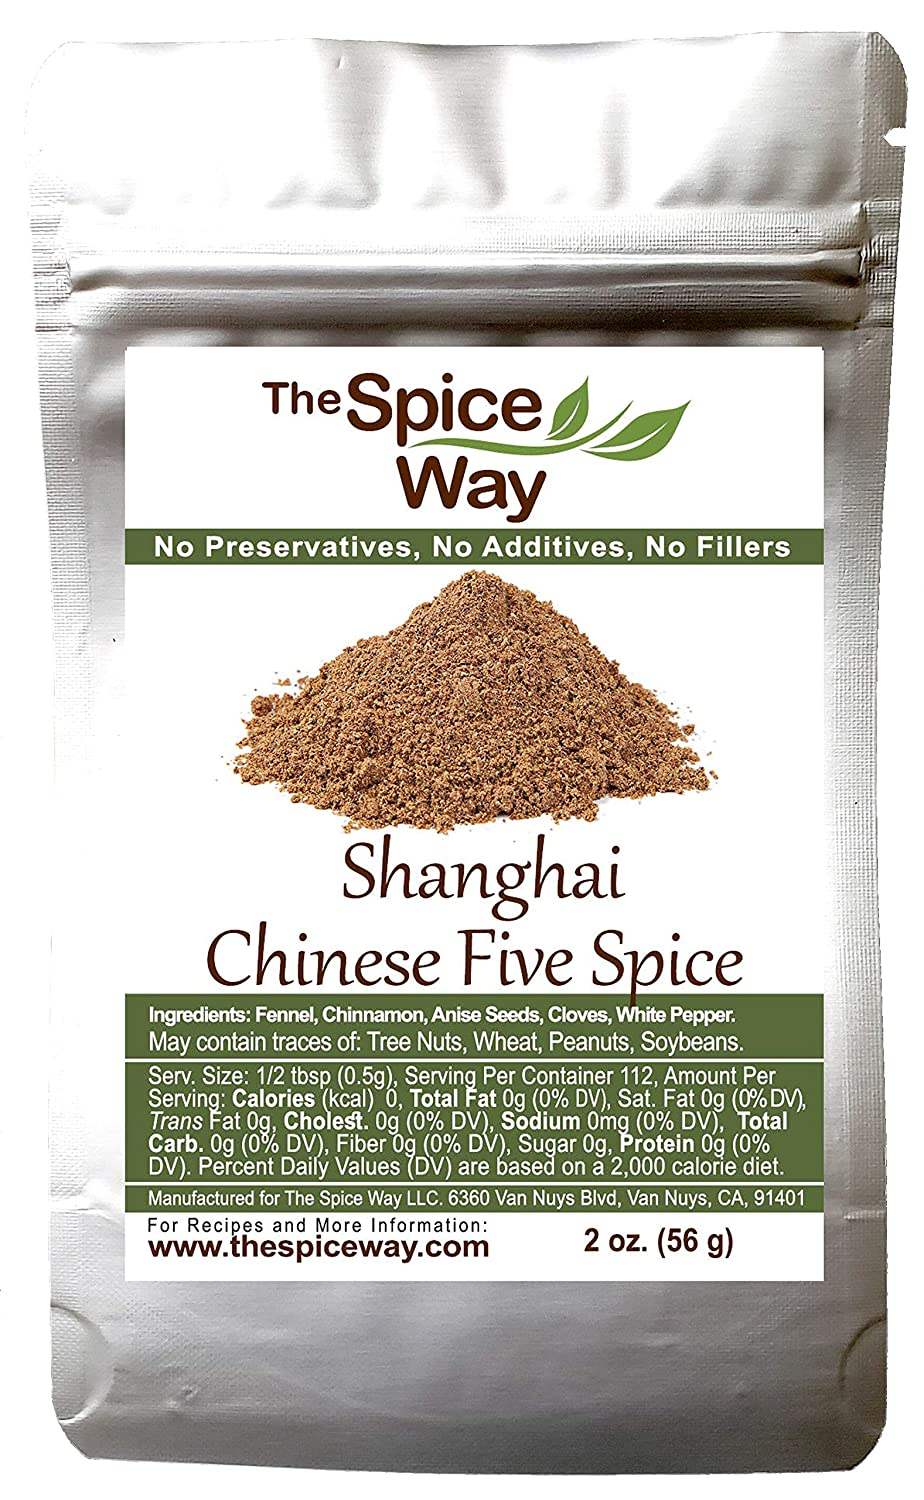 The Spice Way Shanghai Chinese Five Spice - A Traditional Chinese 5 spice seasoning ( 2 oz ) for Asian style dishes with the Chinese staples including pepper. All-purpose, No preservatives, No Salt